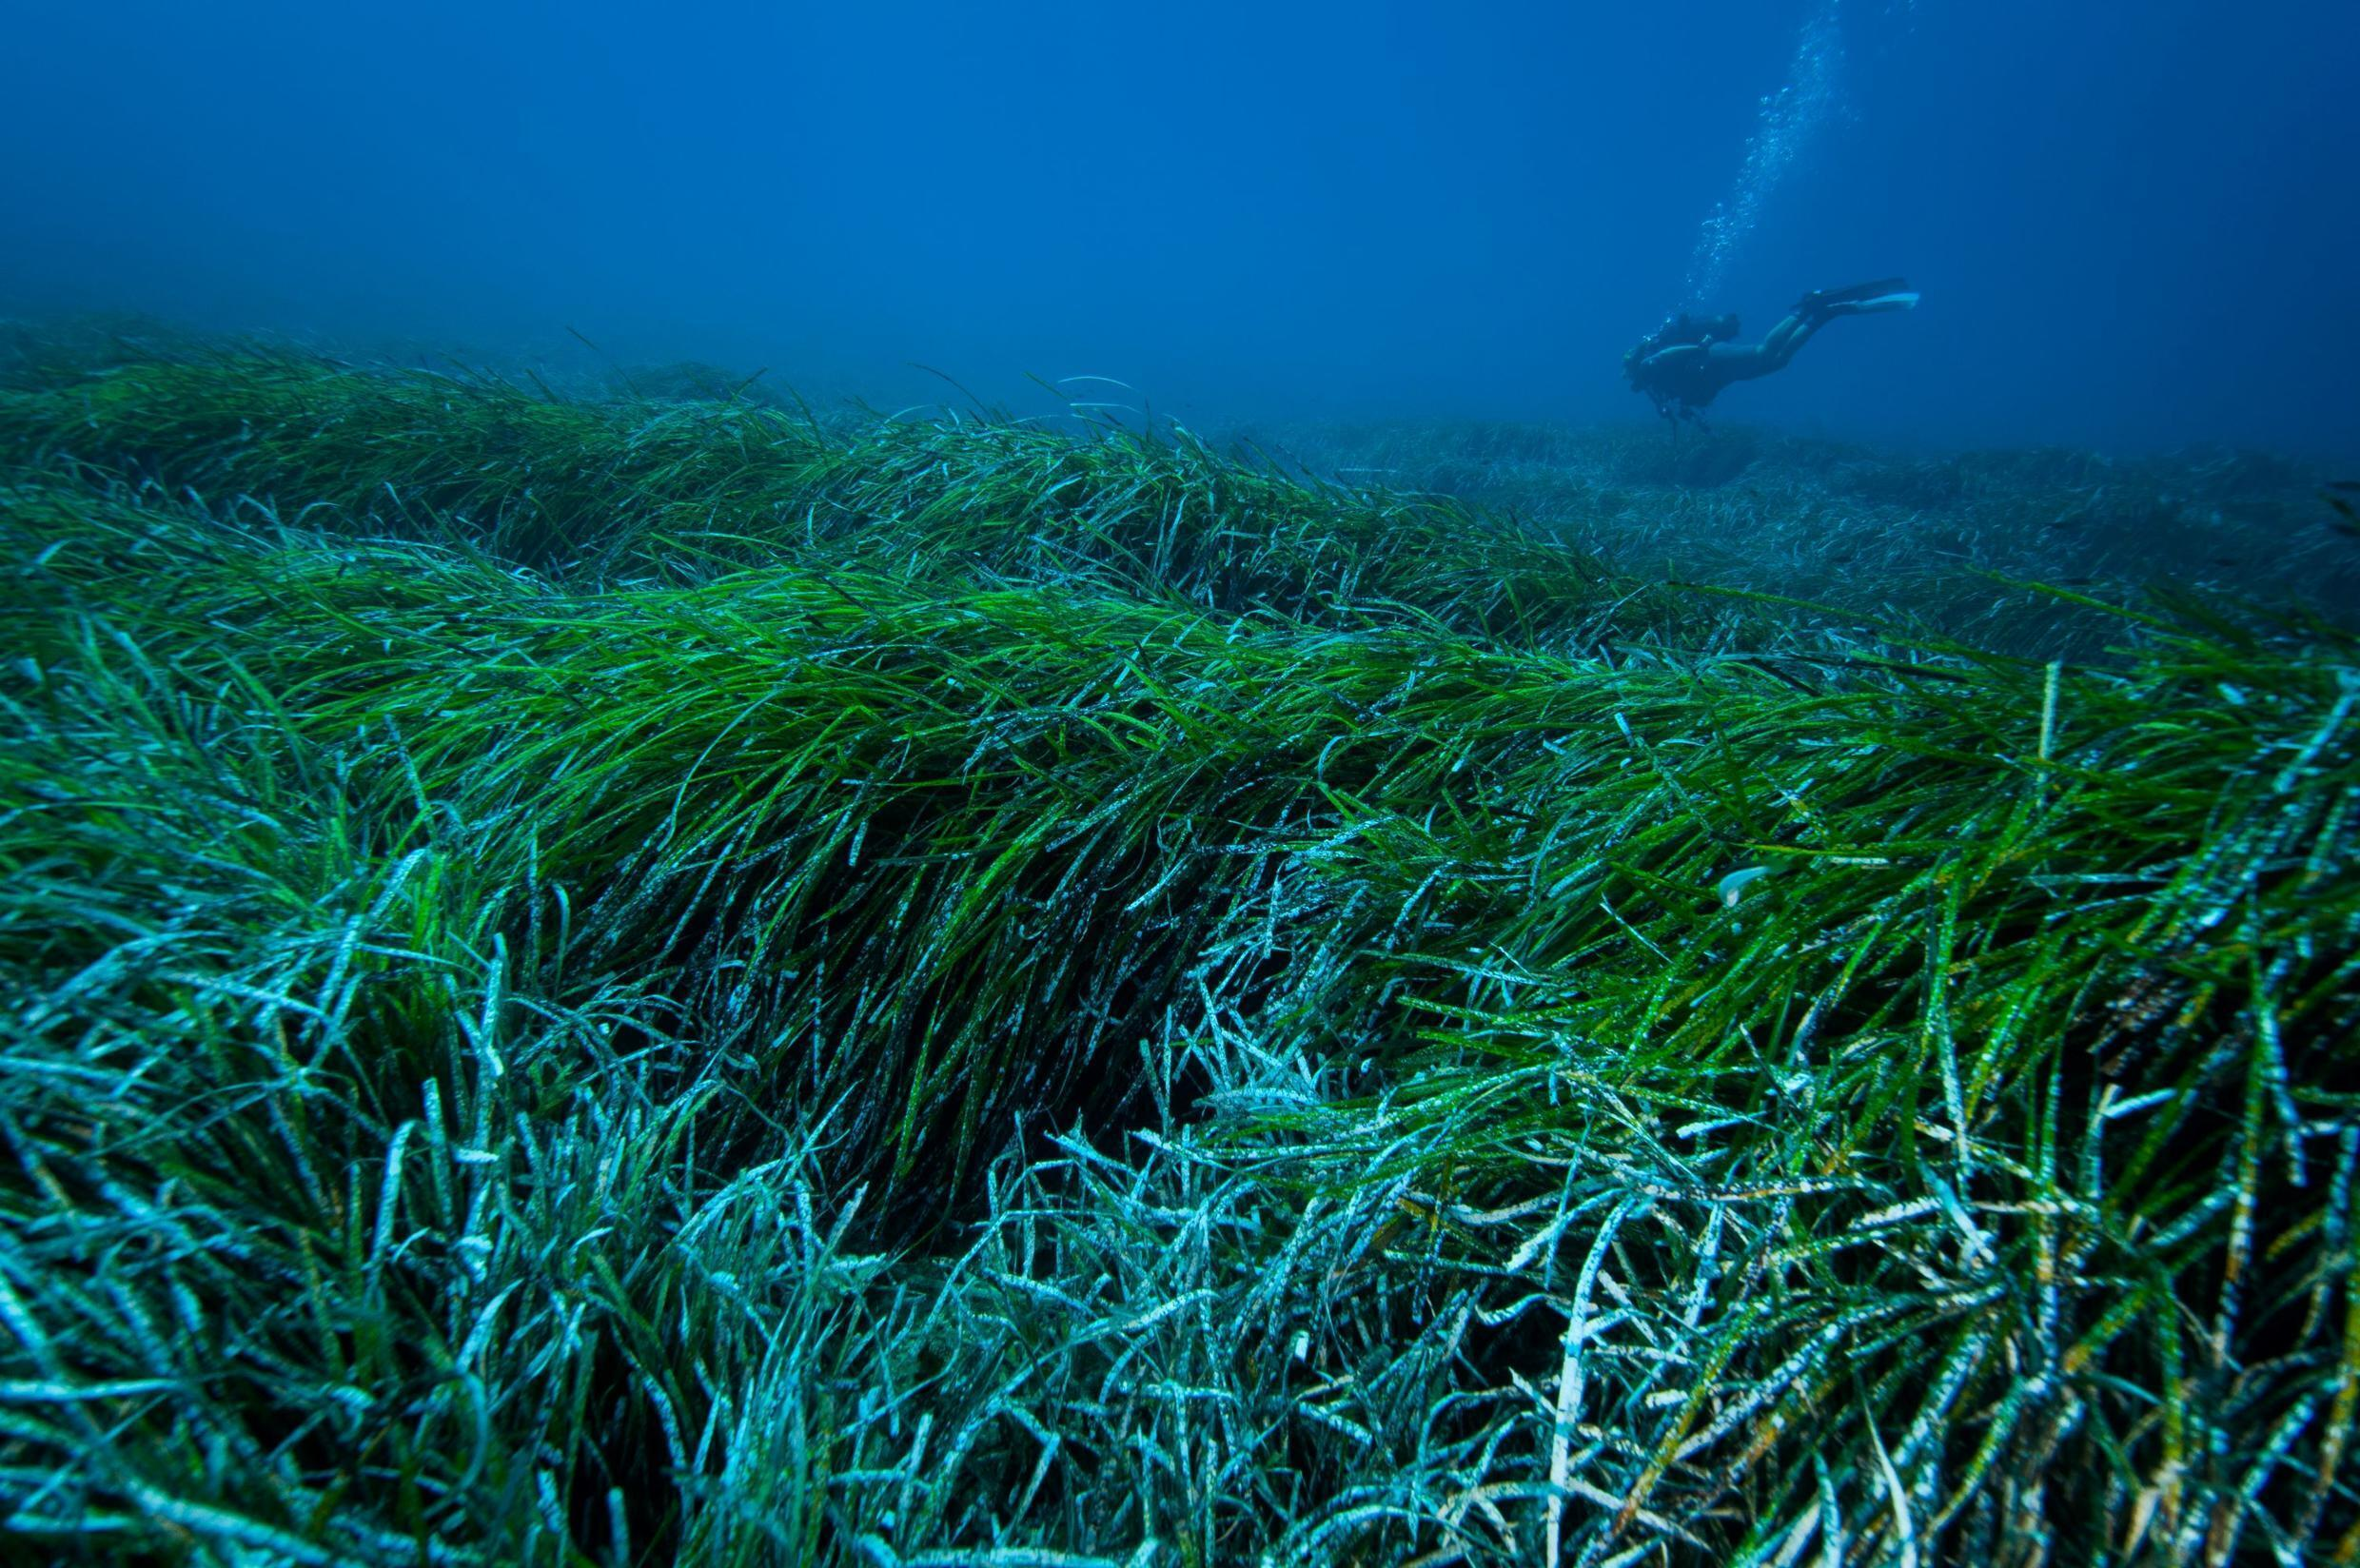 With no help from humans, seagrass balls may collect nearly 900 million plastic items in the Mediterranean alone every year